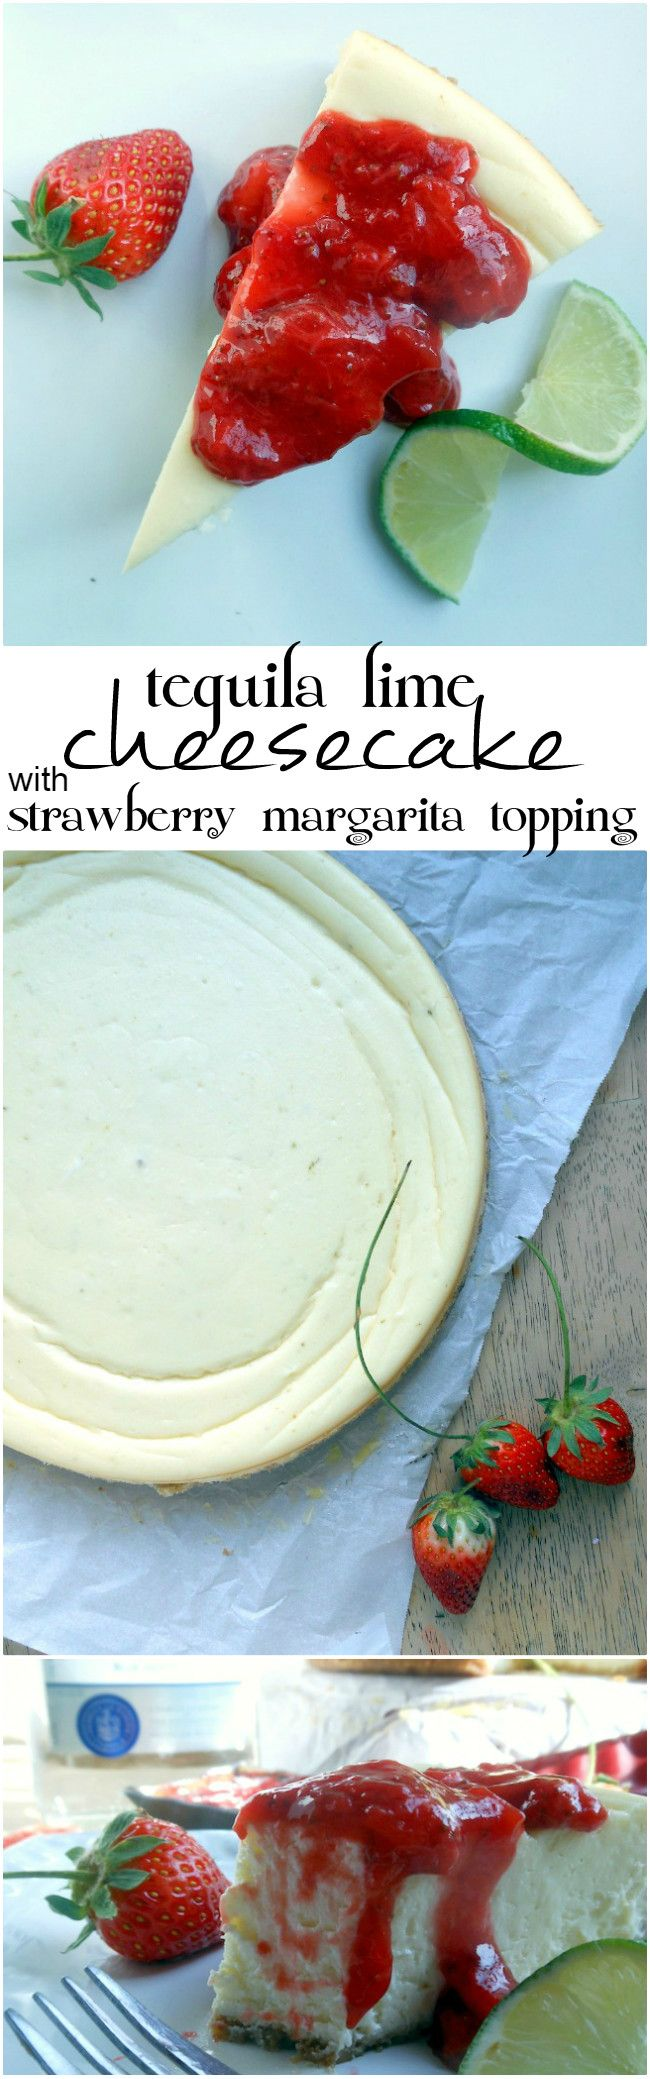 Tequila Lime Cheesecake With Strawberry Margarita Topping An Easy Baked Cheesecake Recipe That Tastes Like